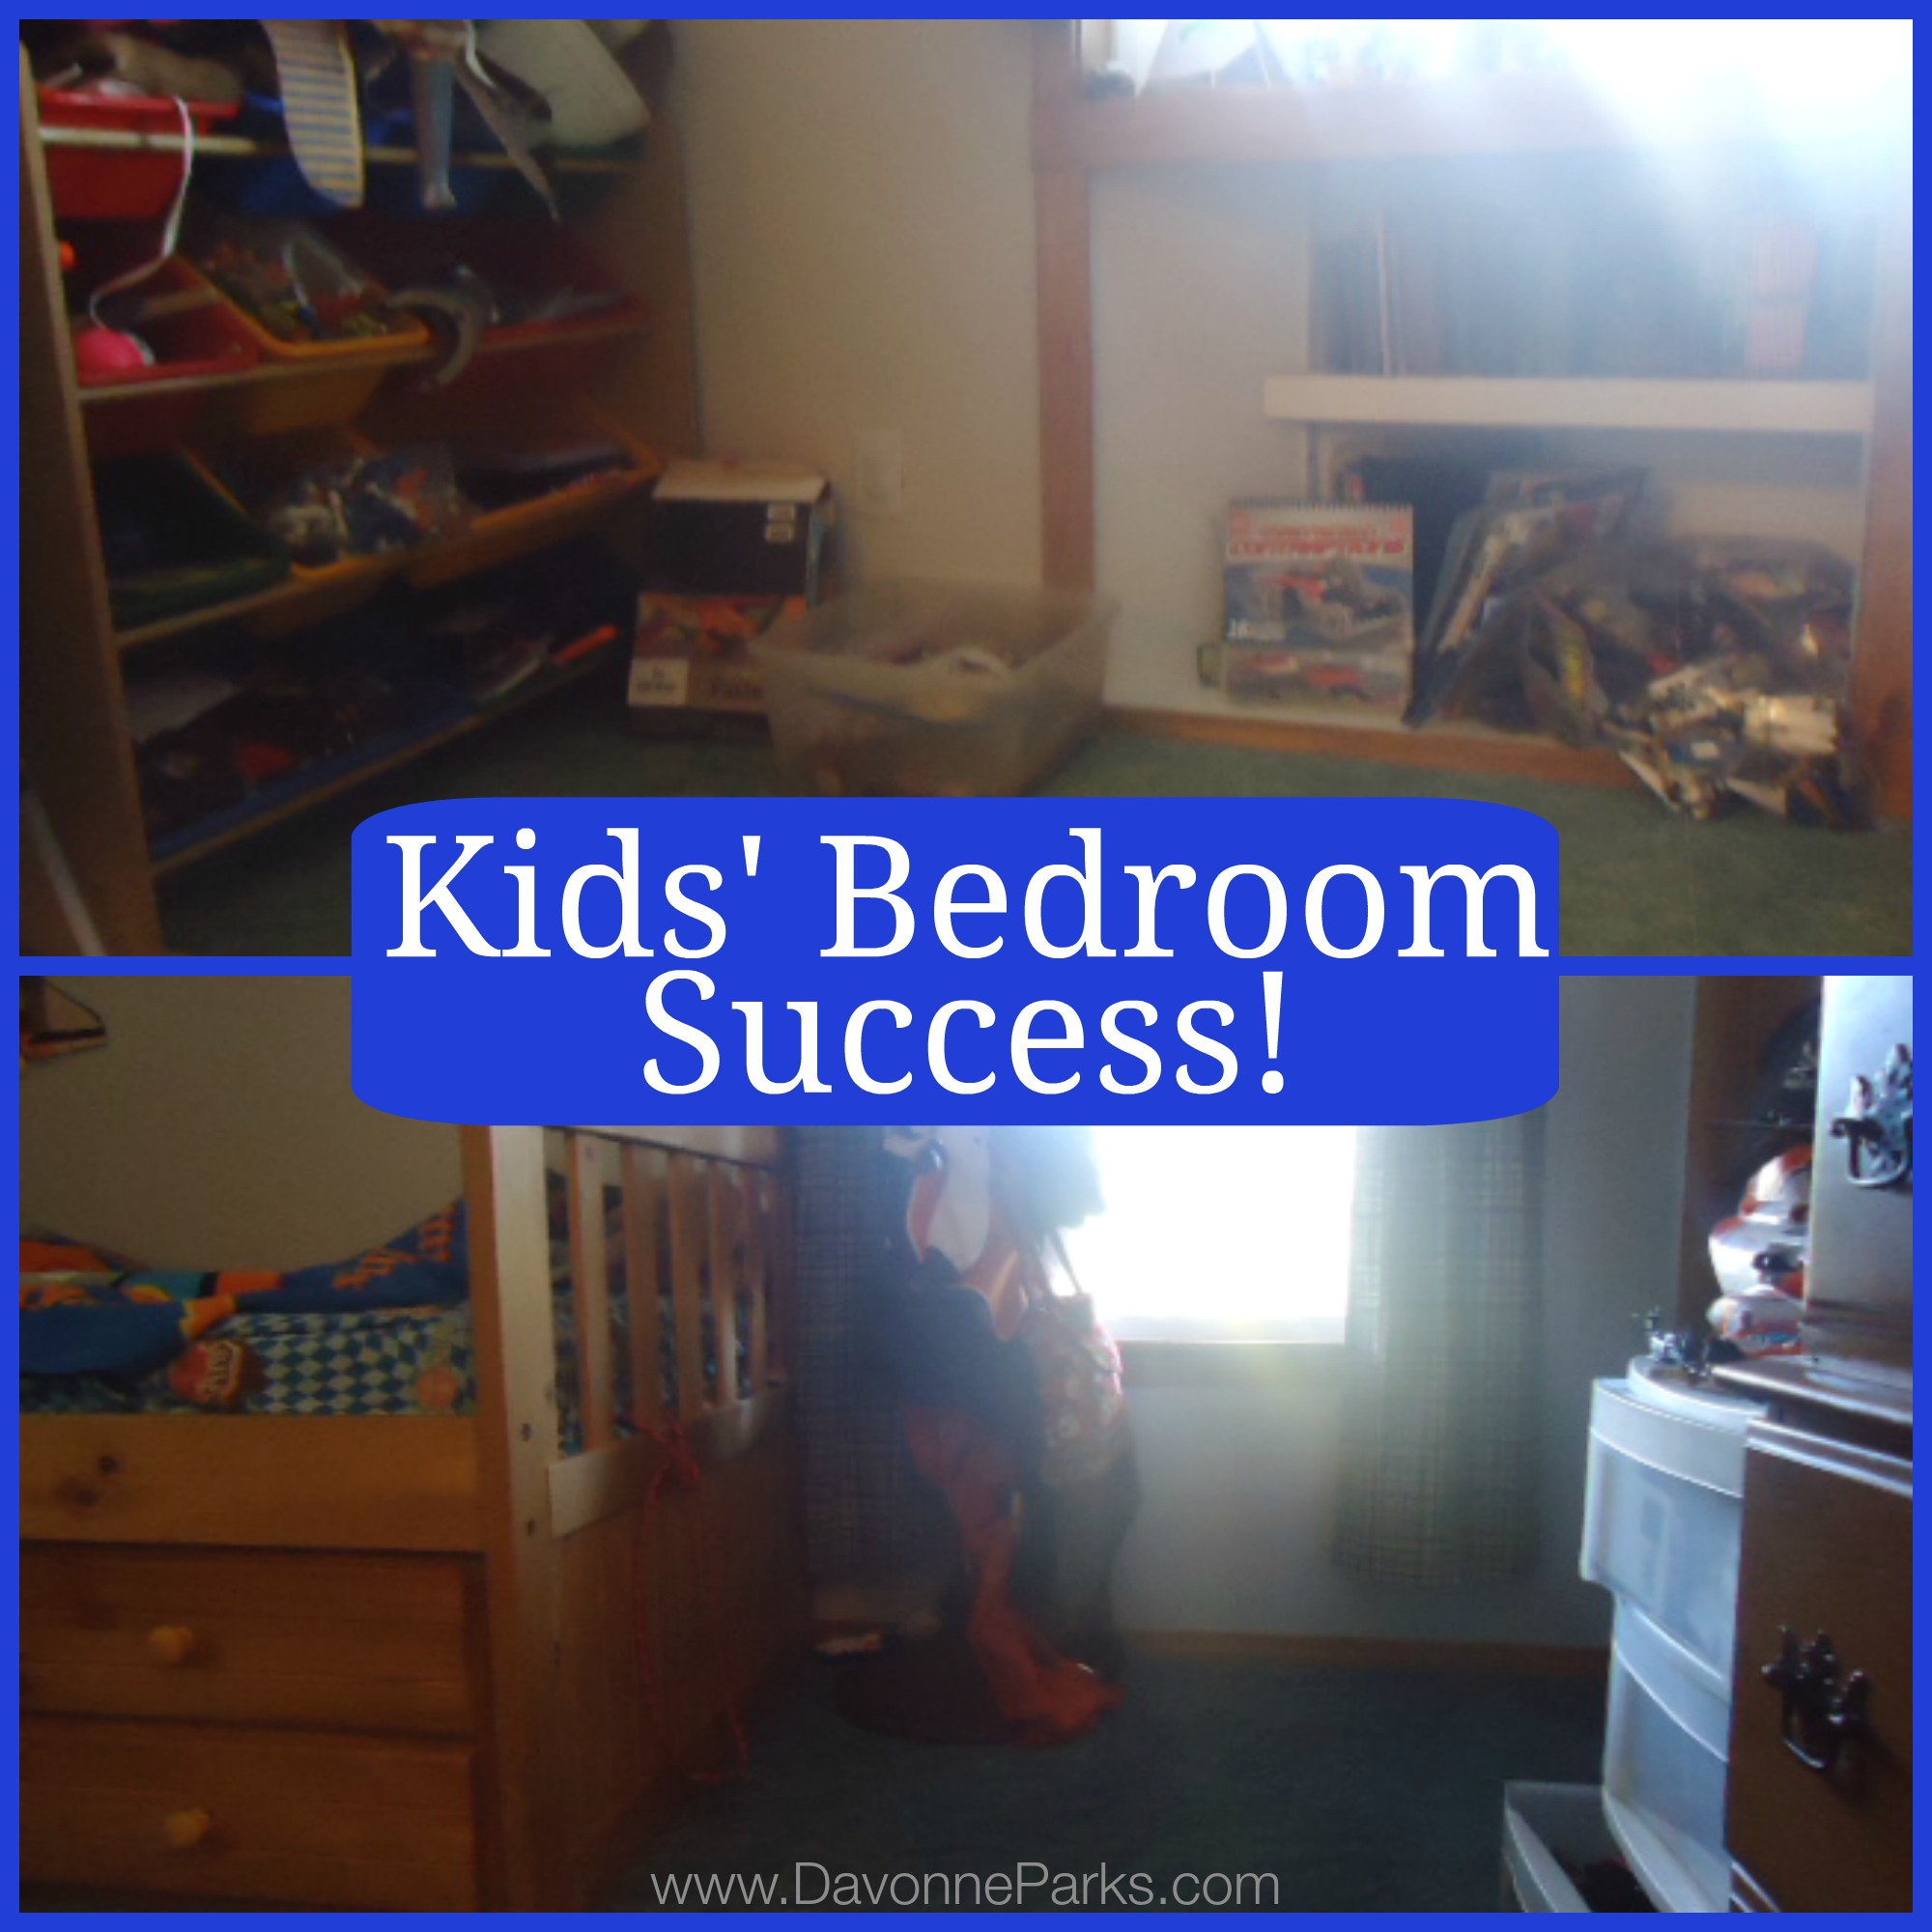 Kids' Bedroom Success!